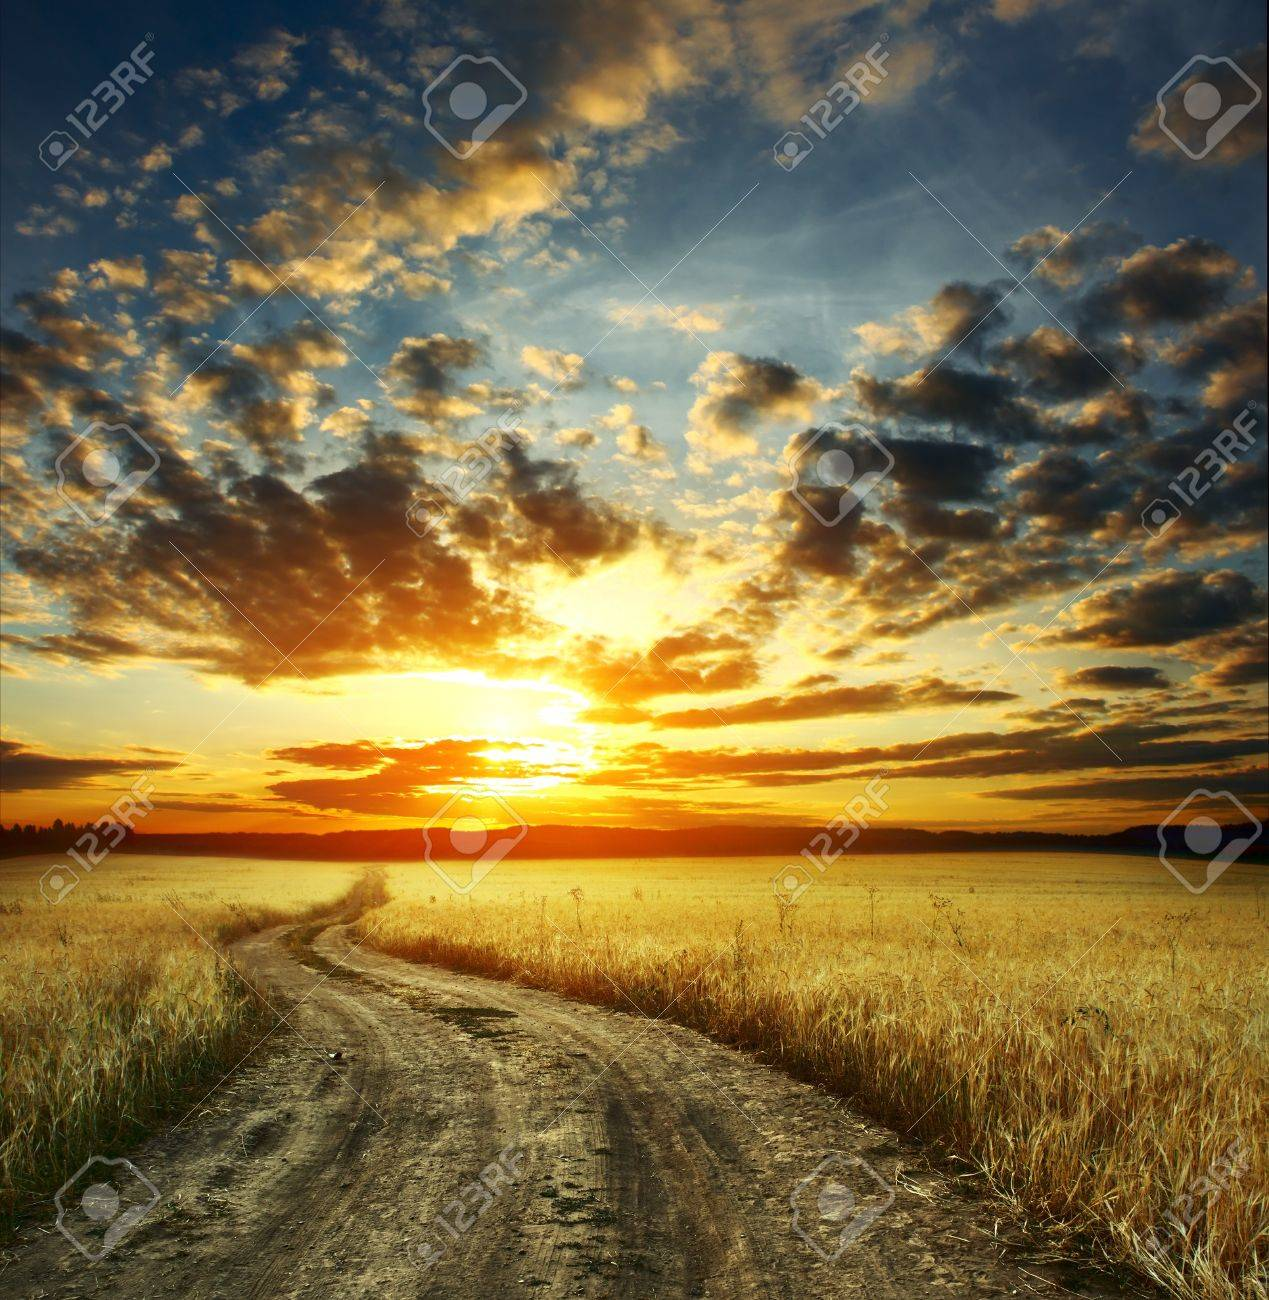 Road in field and cloudy sunset Stock Photo - 7556878